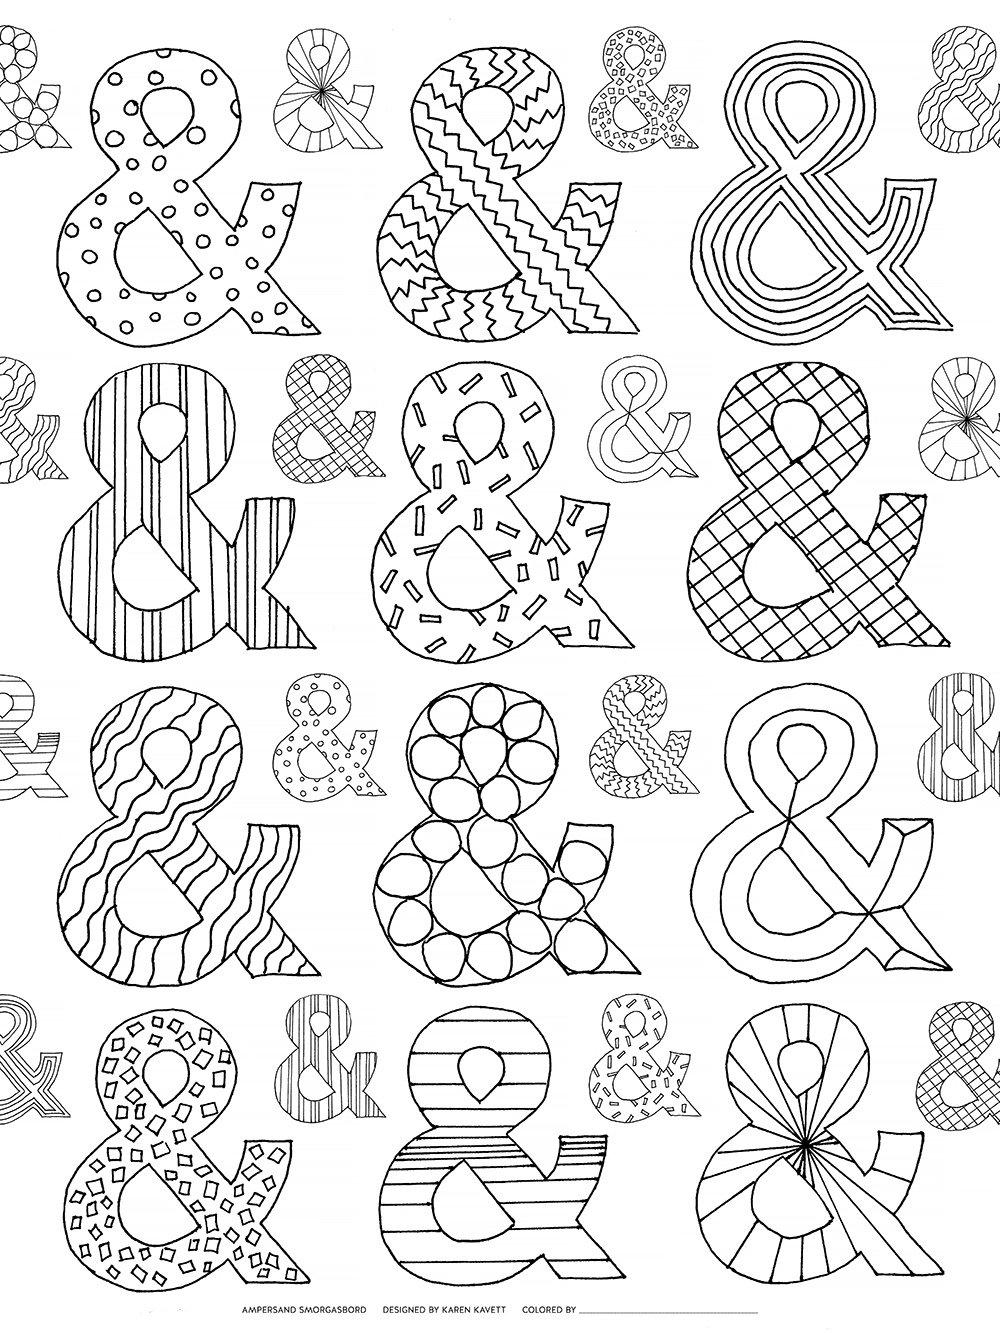 Available Now: The Ampersand Coloring Book for Adults   Karen Kavett